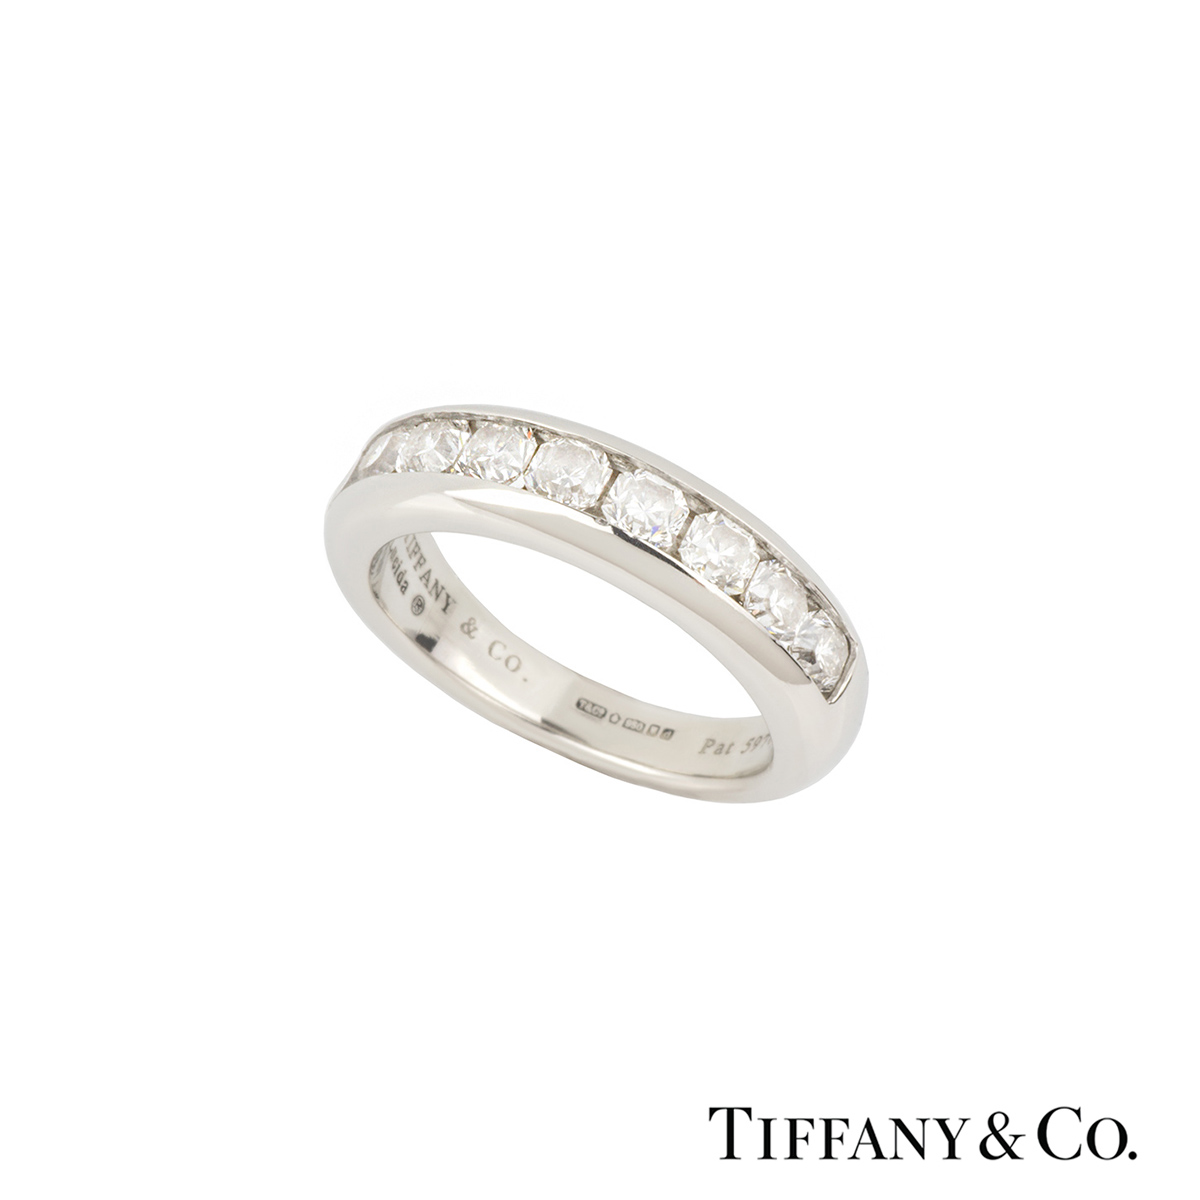 cf3722fe3 Tiffany & Co. Lucida Cut Diamond Half Eternity Ring in Platinum 0.70ct